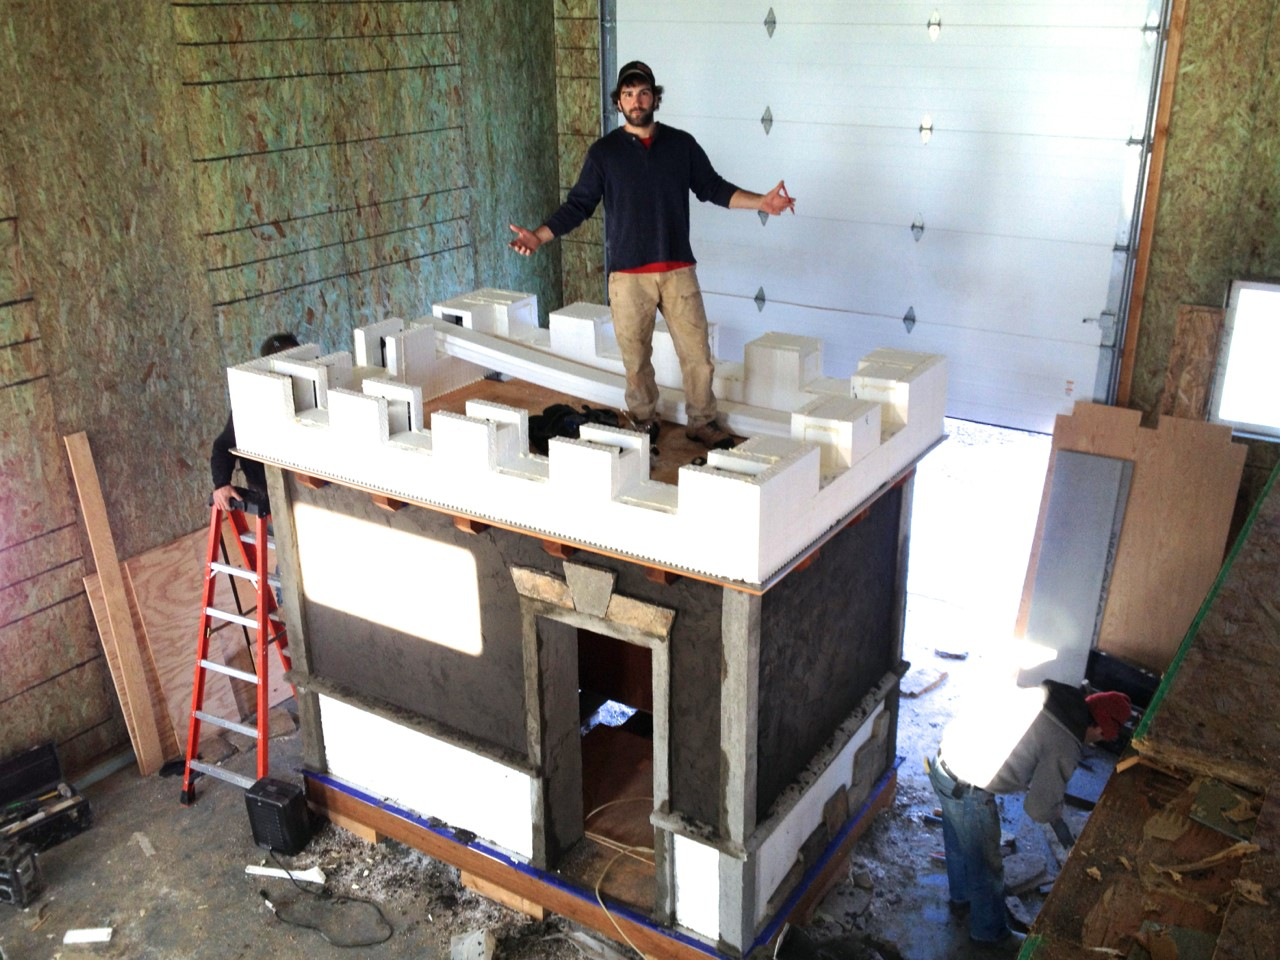 Mazzella Construction Builds ICF Playhouse for Charity